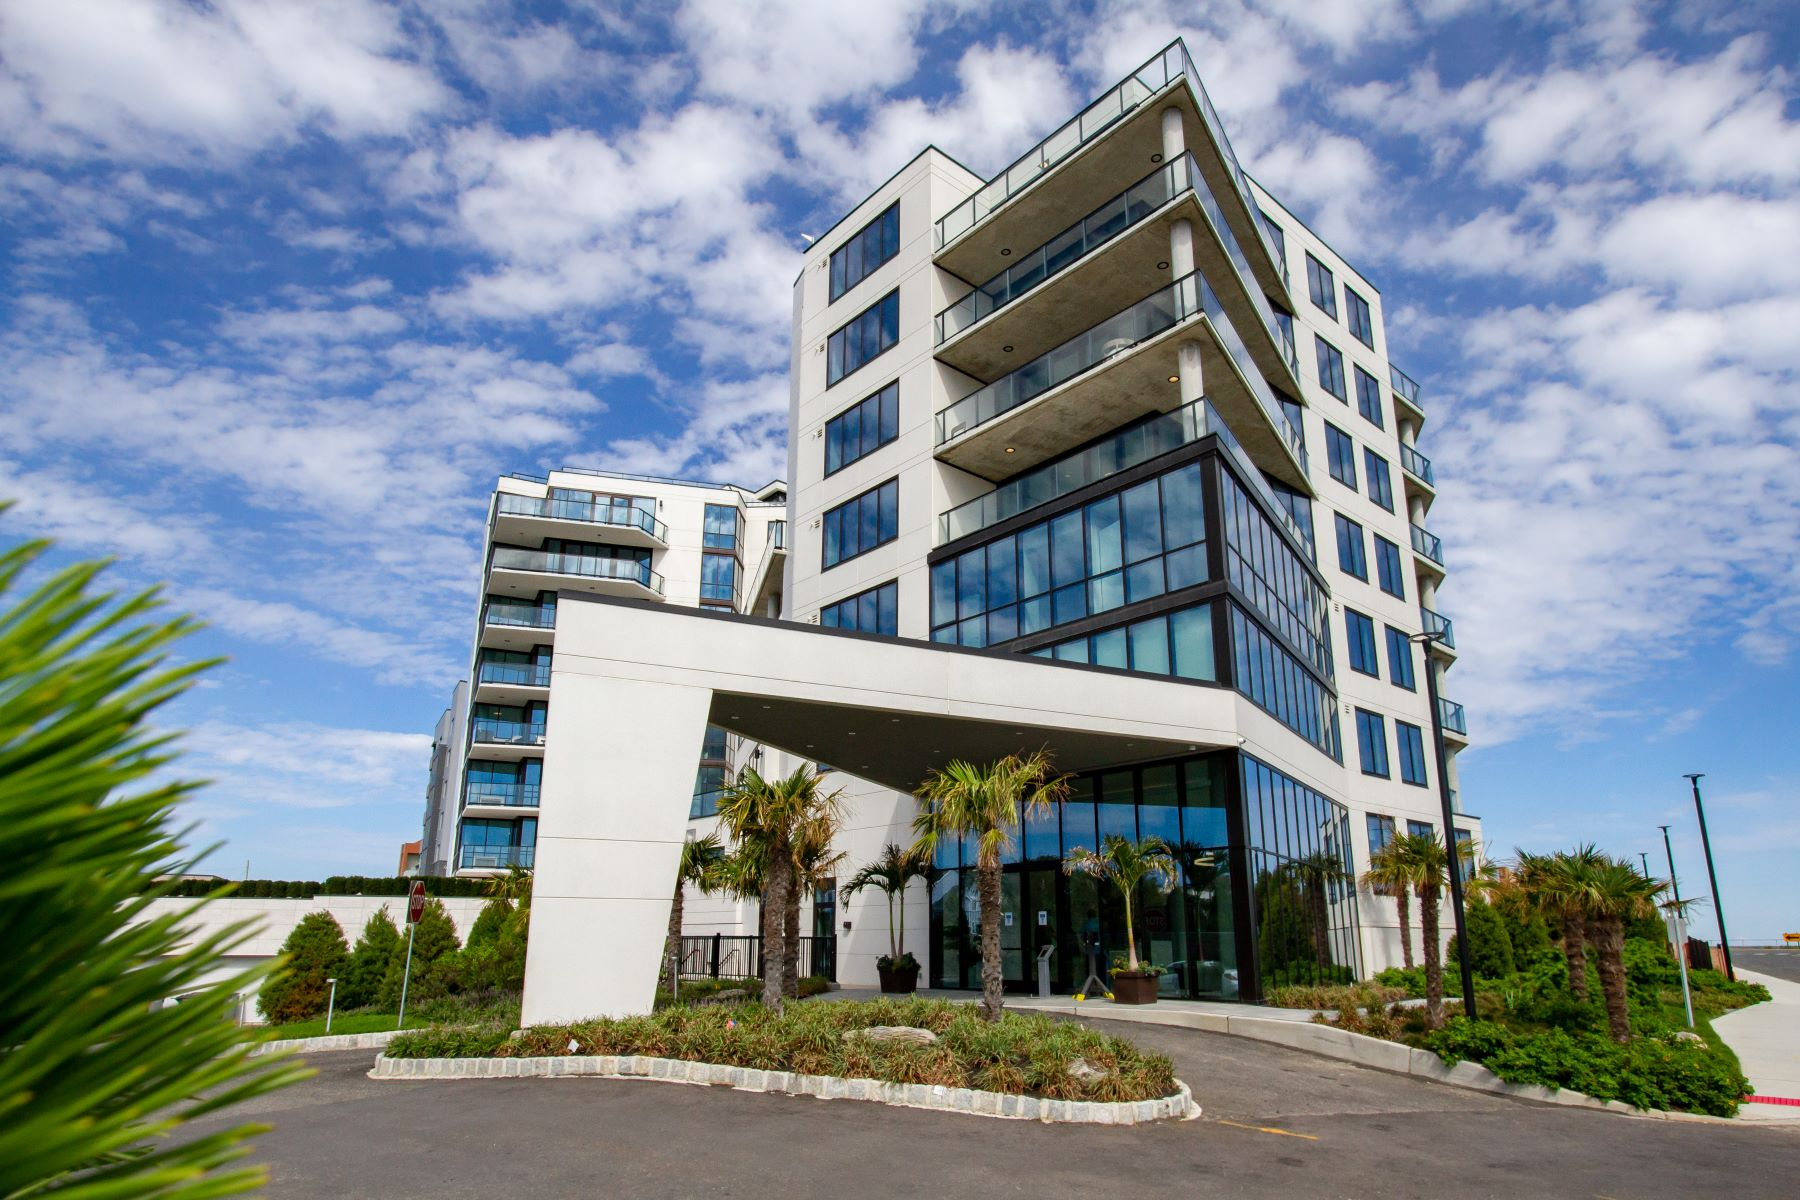 Condominiums for Sale at South Beach at Long Branch 350 Ocean Avenue 401, Long Branch, New Jersey 07740 United States